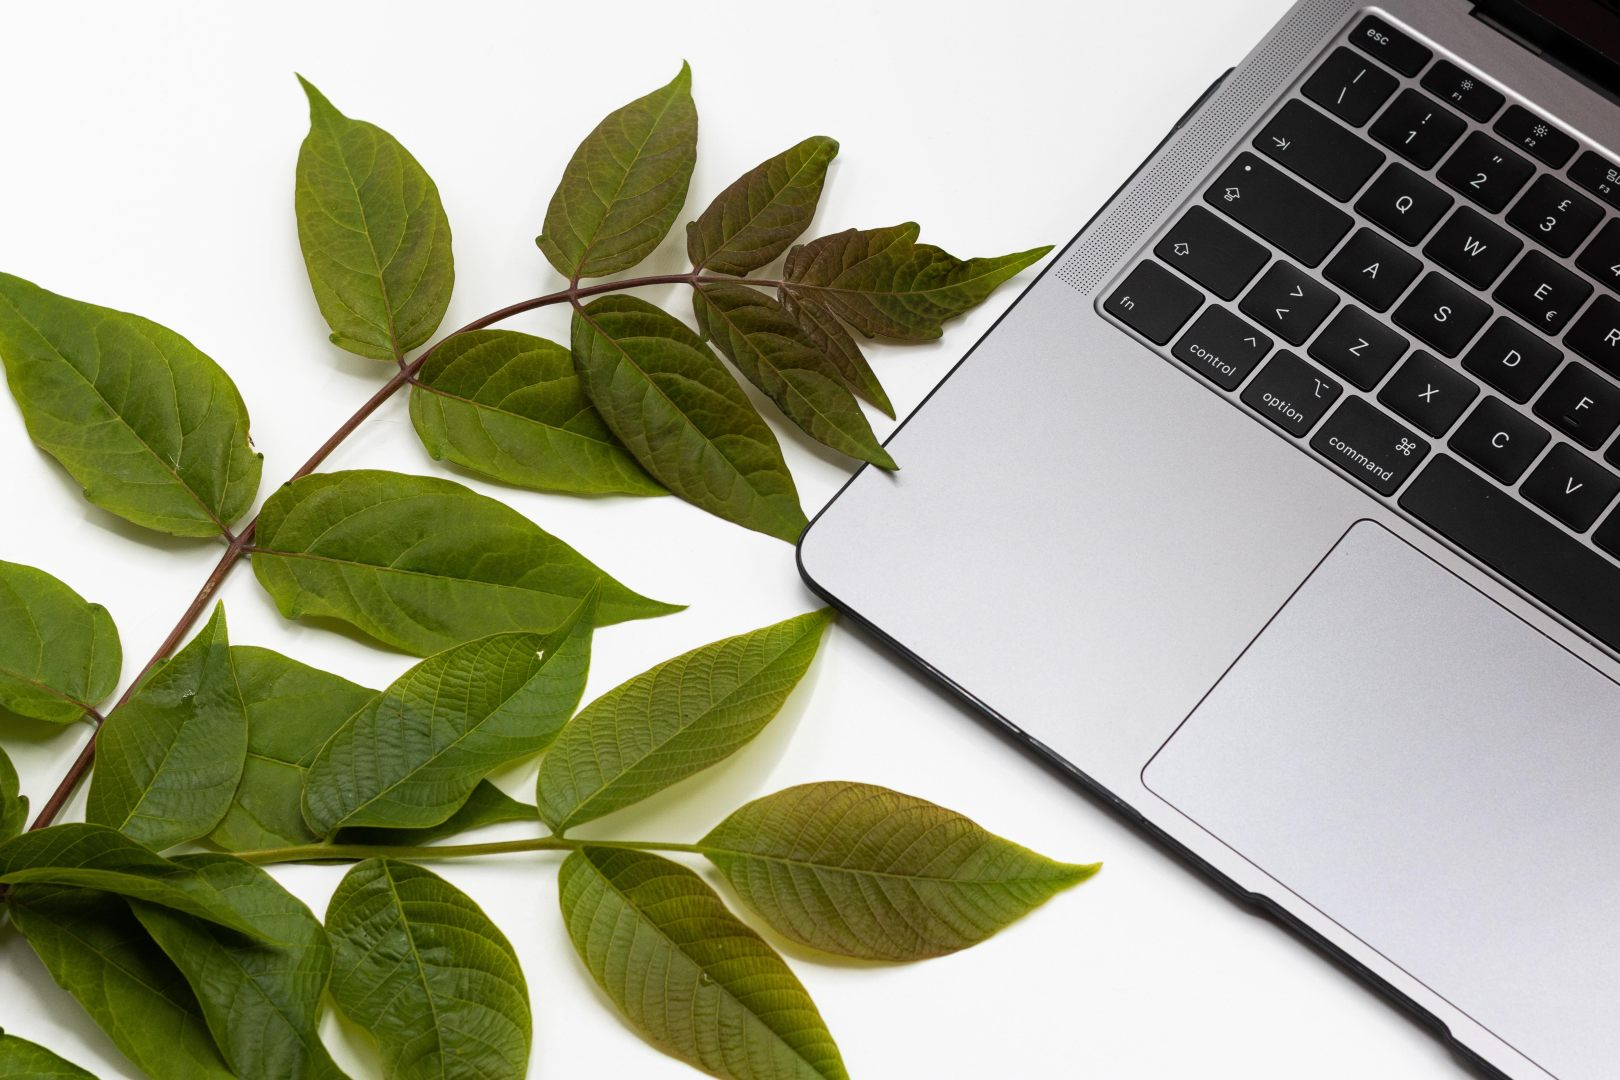 A couple sprigs of green leafy plants are on a white surface next to an open laptop.